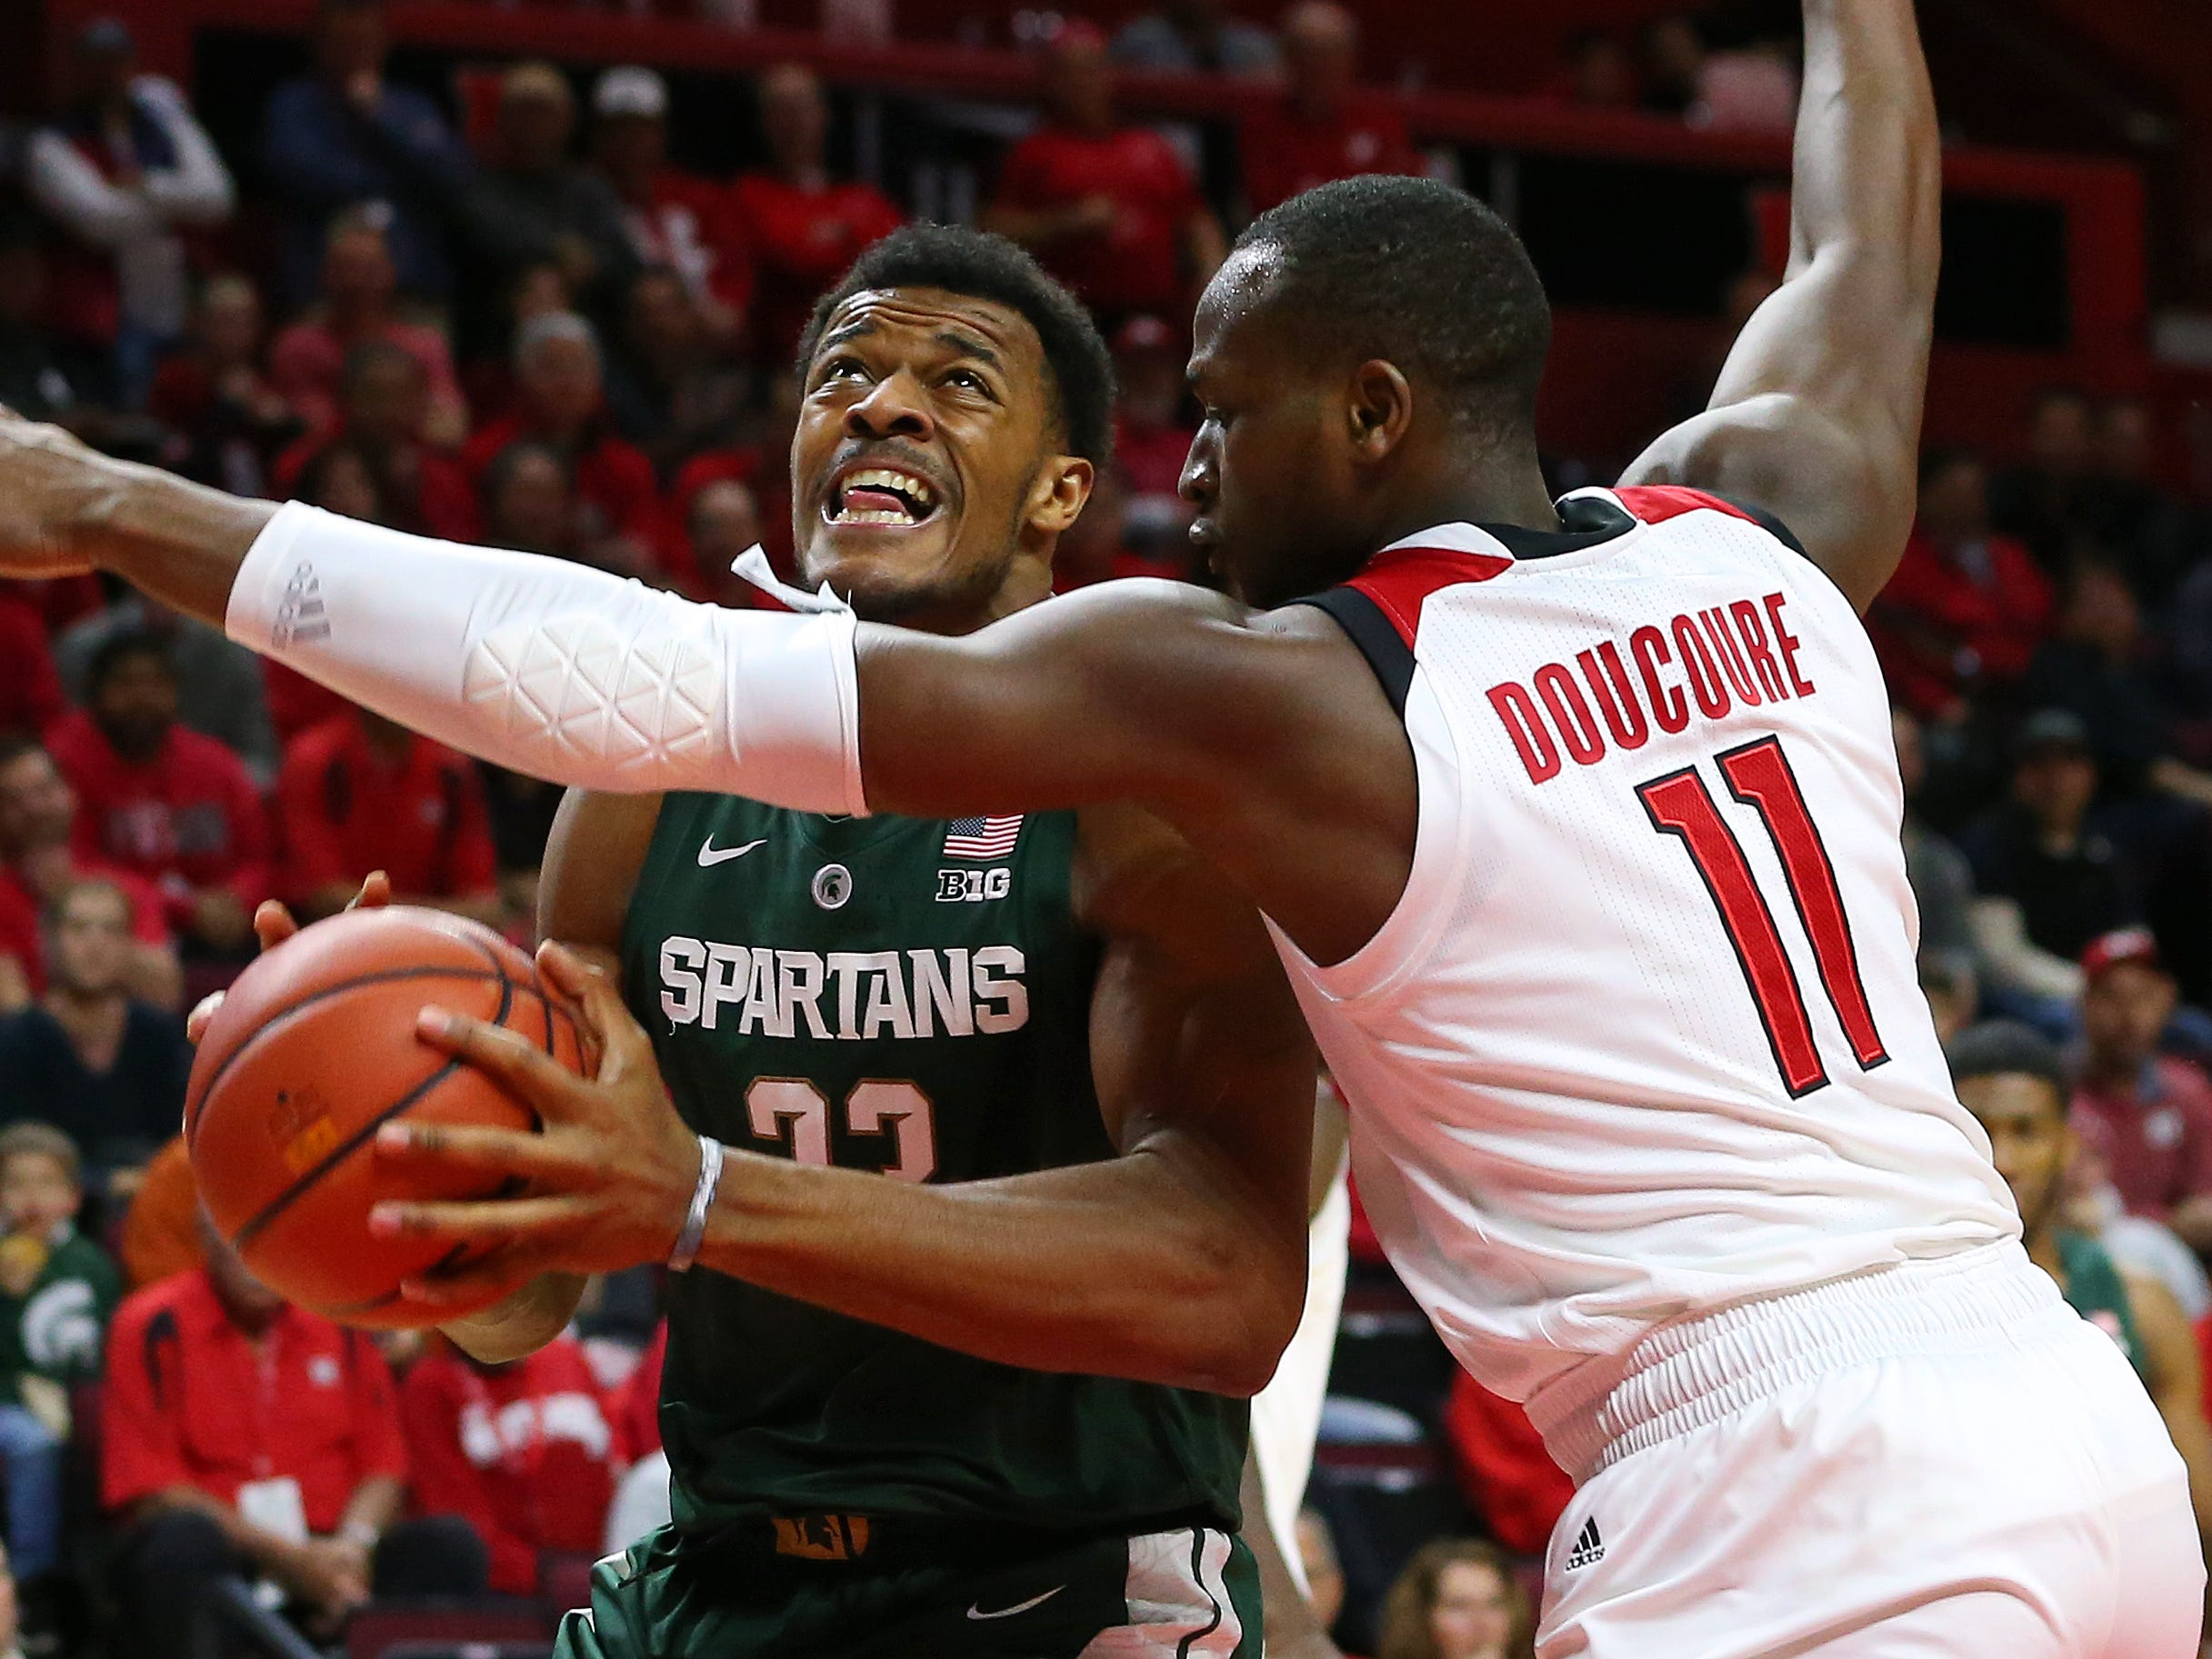 Xavier Tillman #23 of the Michigan State Spartans attempts to drive to the basket as Mamadou Doucoure #11 of the Rutgers Scarlet Knights defends during the first half of a college basketball game at the Rutgers Athletic Center on November 30, 2018 in Piscataway, New Jersey.